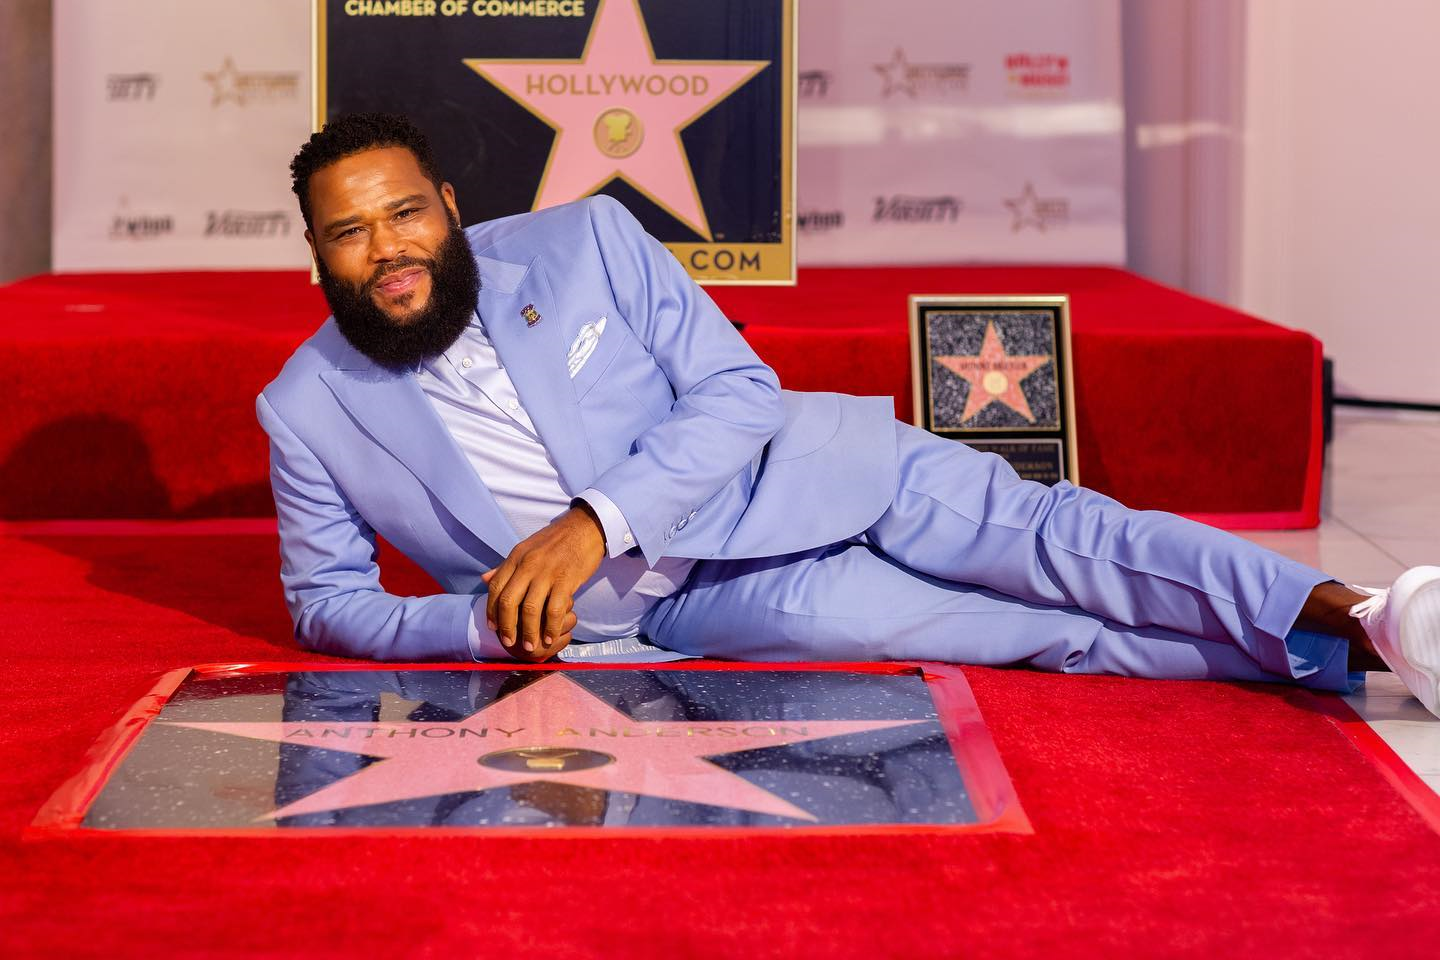 Anderson laying down in front of his star on The Hollywood Walk of Fame at the first-ever virtual ceremony at Historic Hollywood Museum